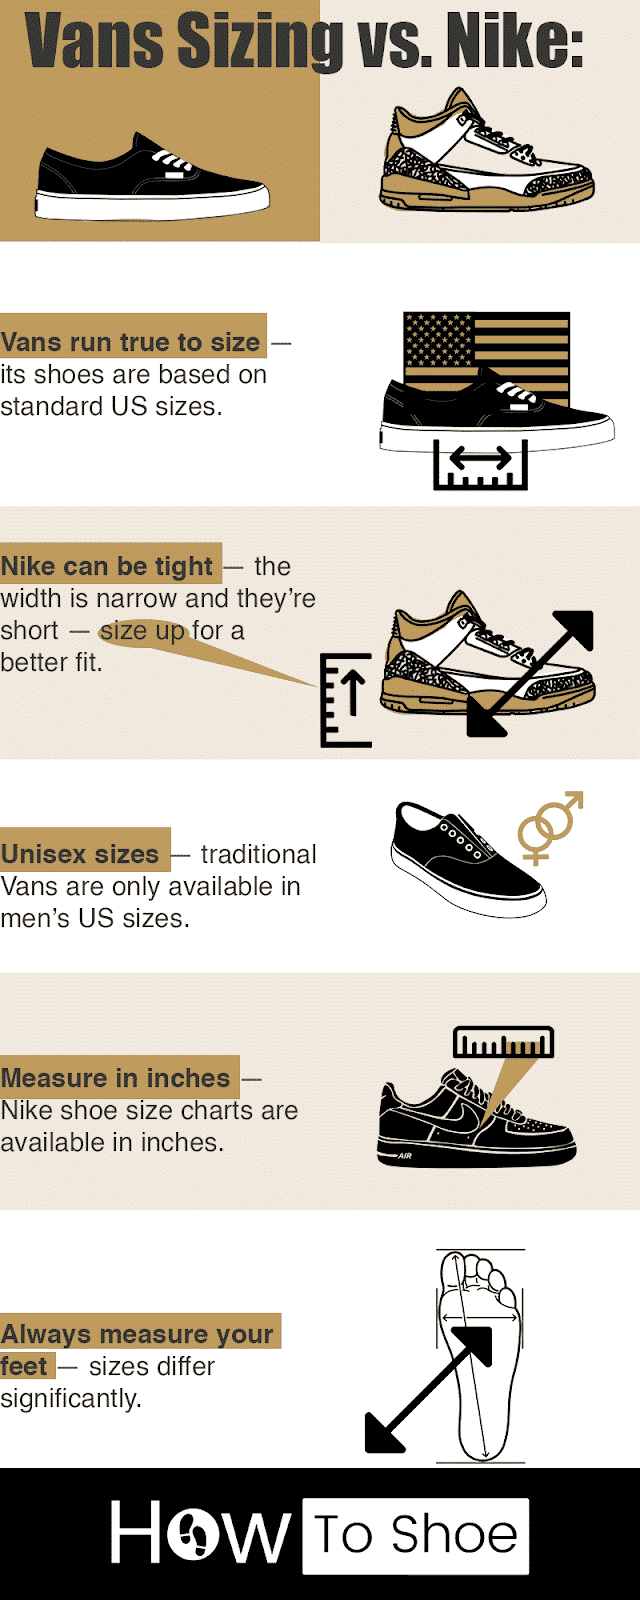 infographic Vans Sizing vs Nike